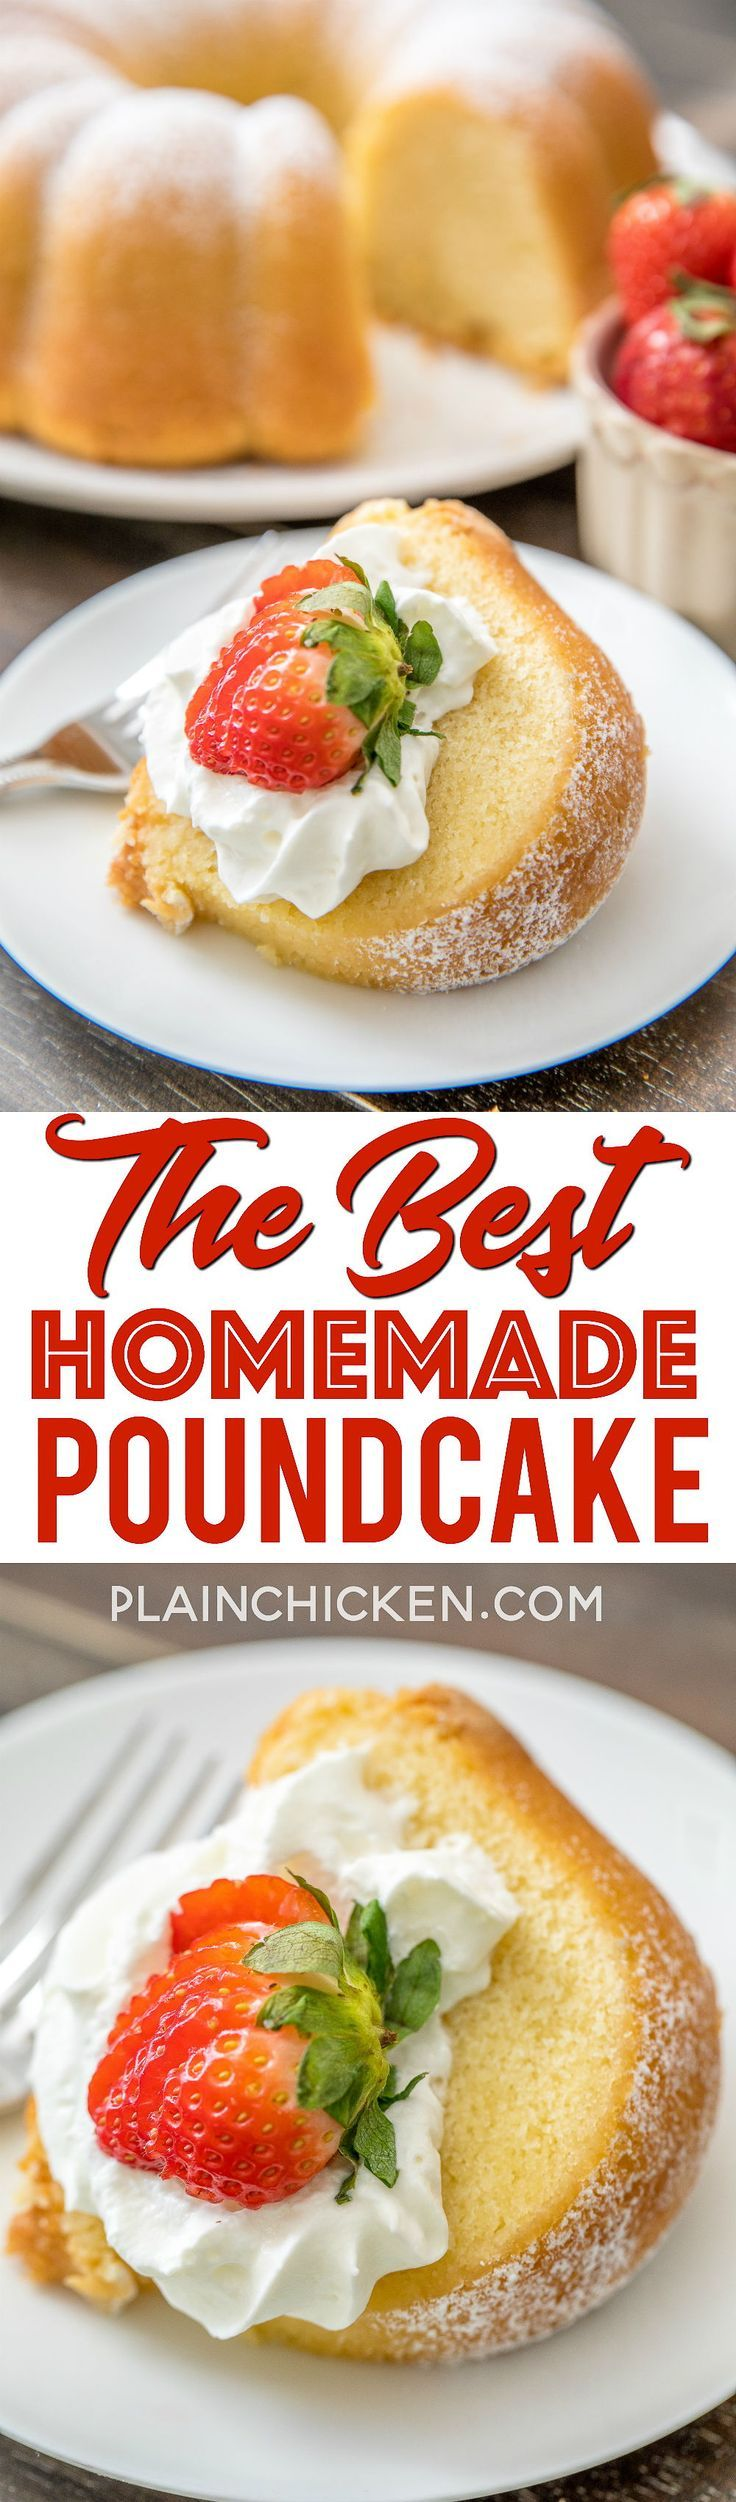 The BEST Homemade Pound Cake - I've been making this cake for over 20 years and it never fails me! Seriously DELICIOUS!!! The key to success is to have all your ingredients at room temperature. Butter, shortening, sugar, eggs, flour, baking powder, milk,